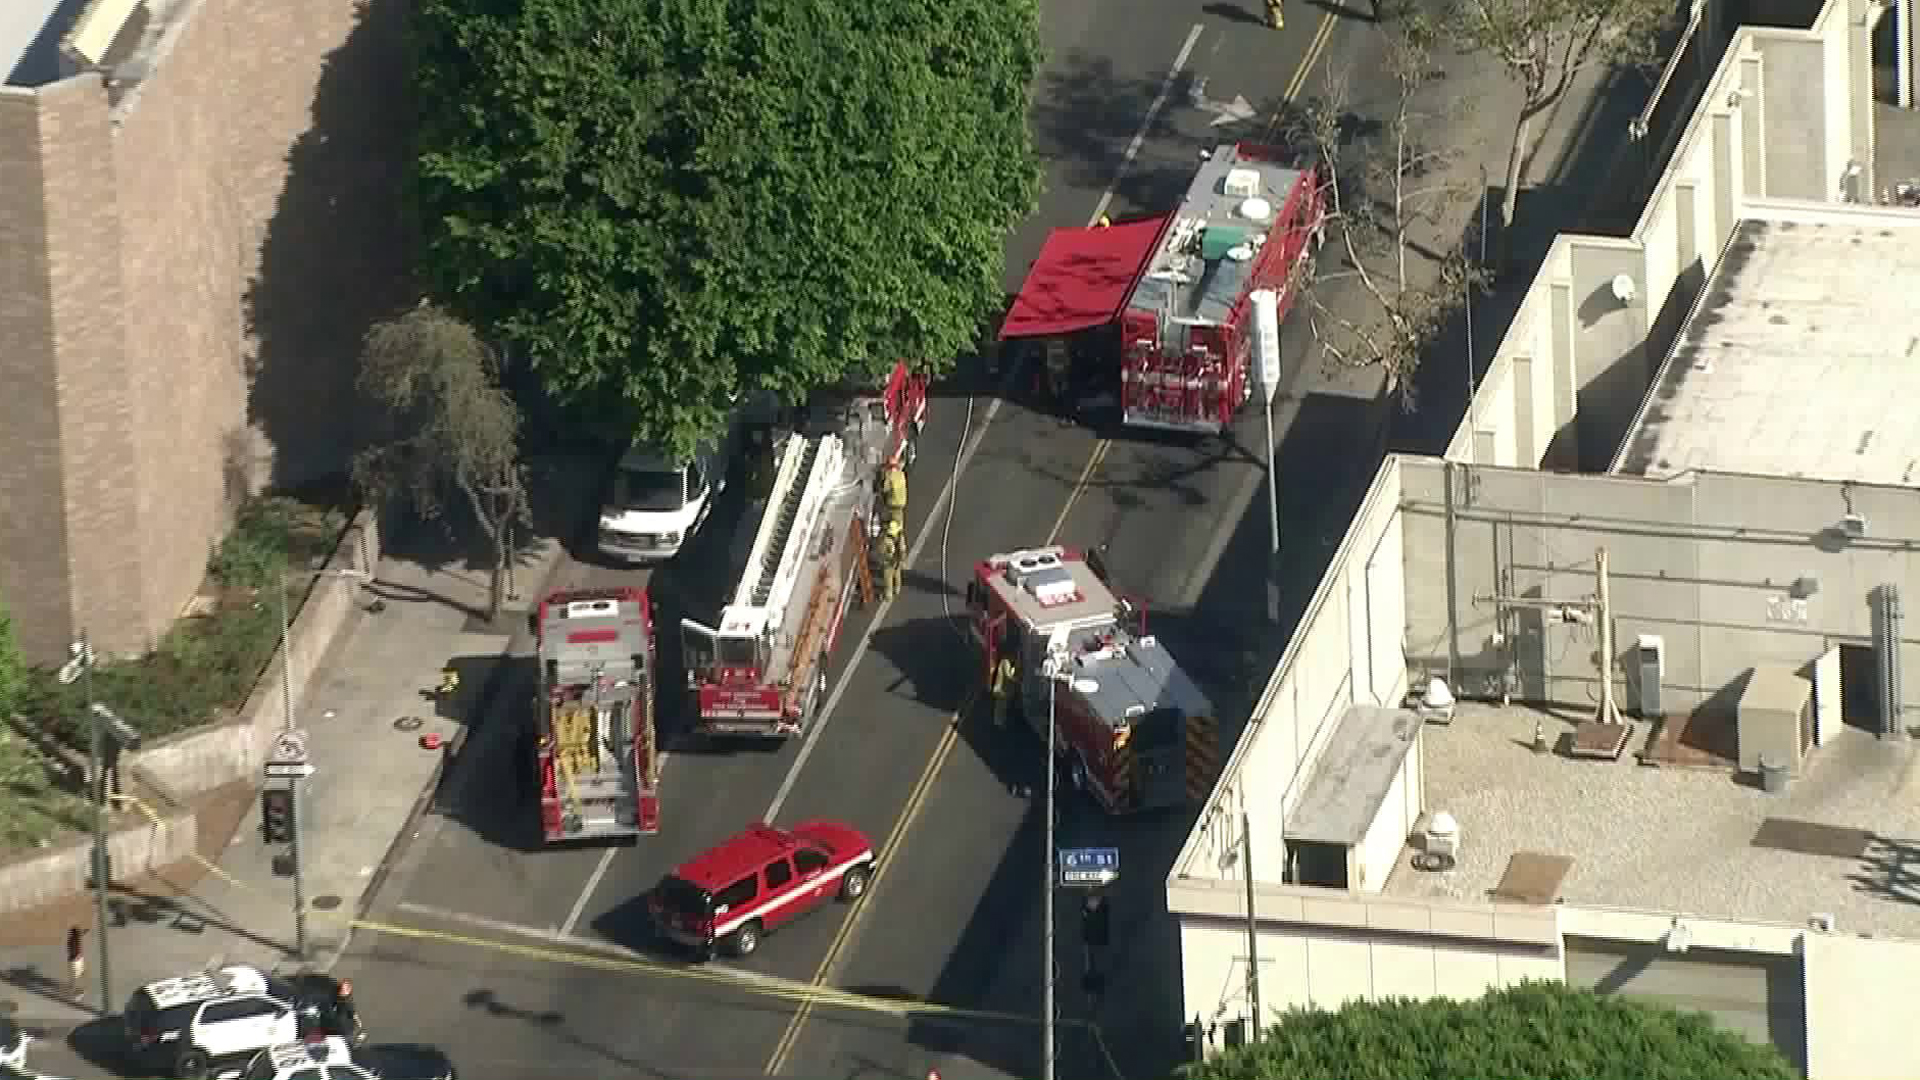 Los Angeles firefighters respond to a suspicious odor at LAPD's central division on Oct. 26, 2018. (Credit: KTLA)